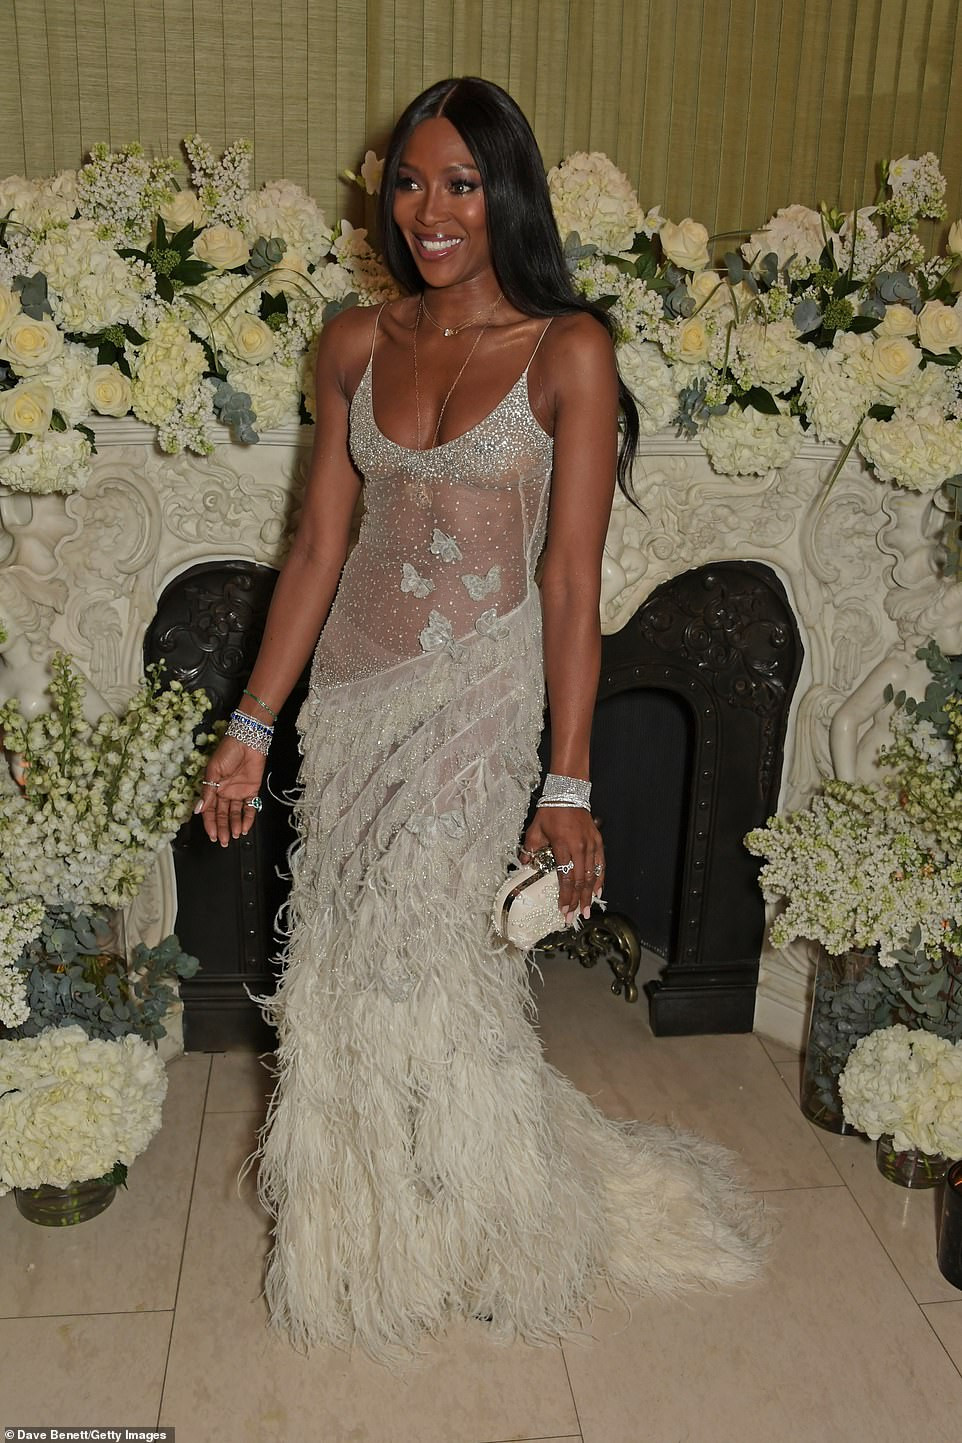 Naomi Campbell and beau Liam Payne attend Vogue BAFTA party amidst romance rumours